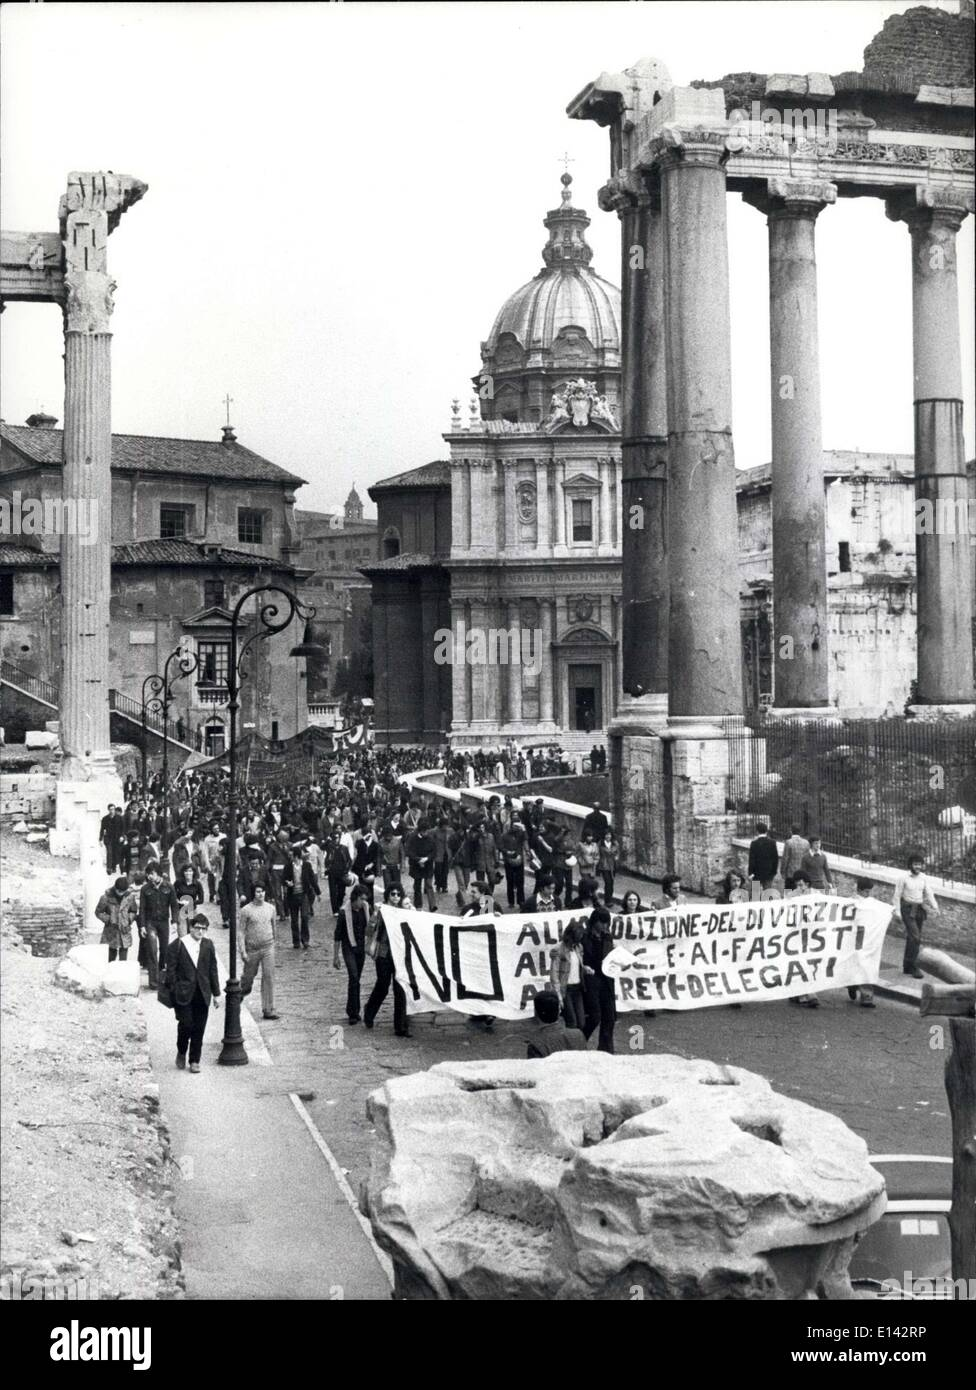 Apr. 04, 2012 - Rome, 24 April 1974. A new itinerary of the Roman students that demonstrate one day yes and the other no against all , is the Roman Forum. - Stock Image